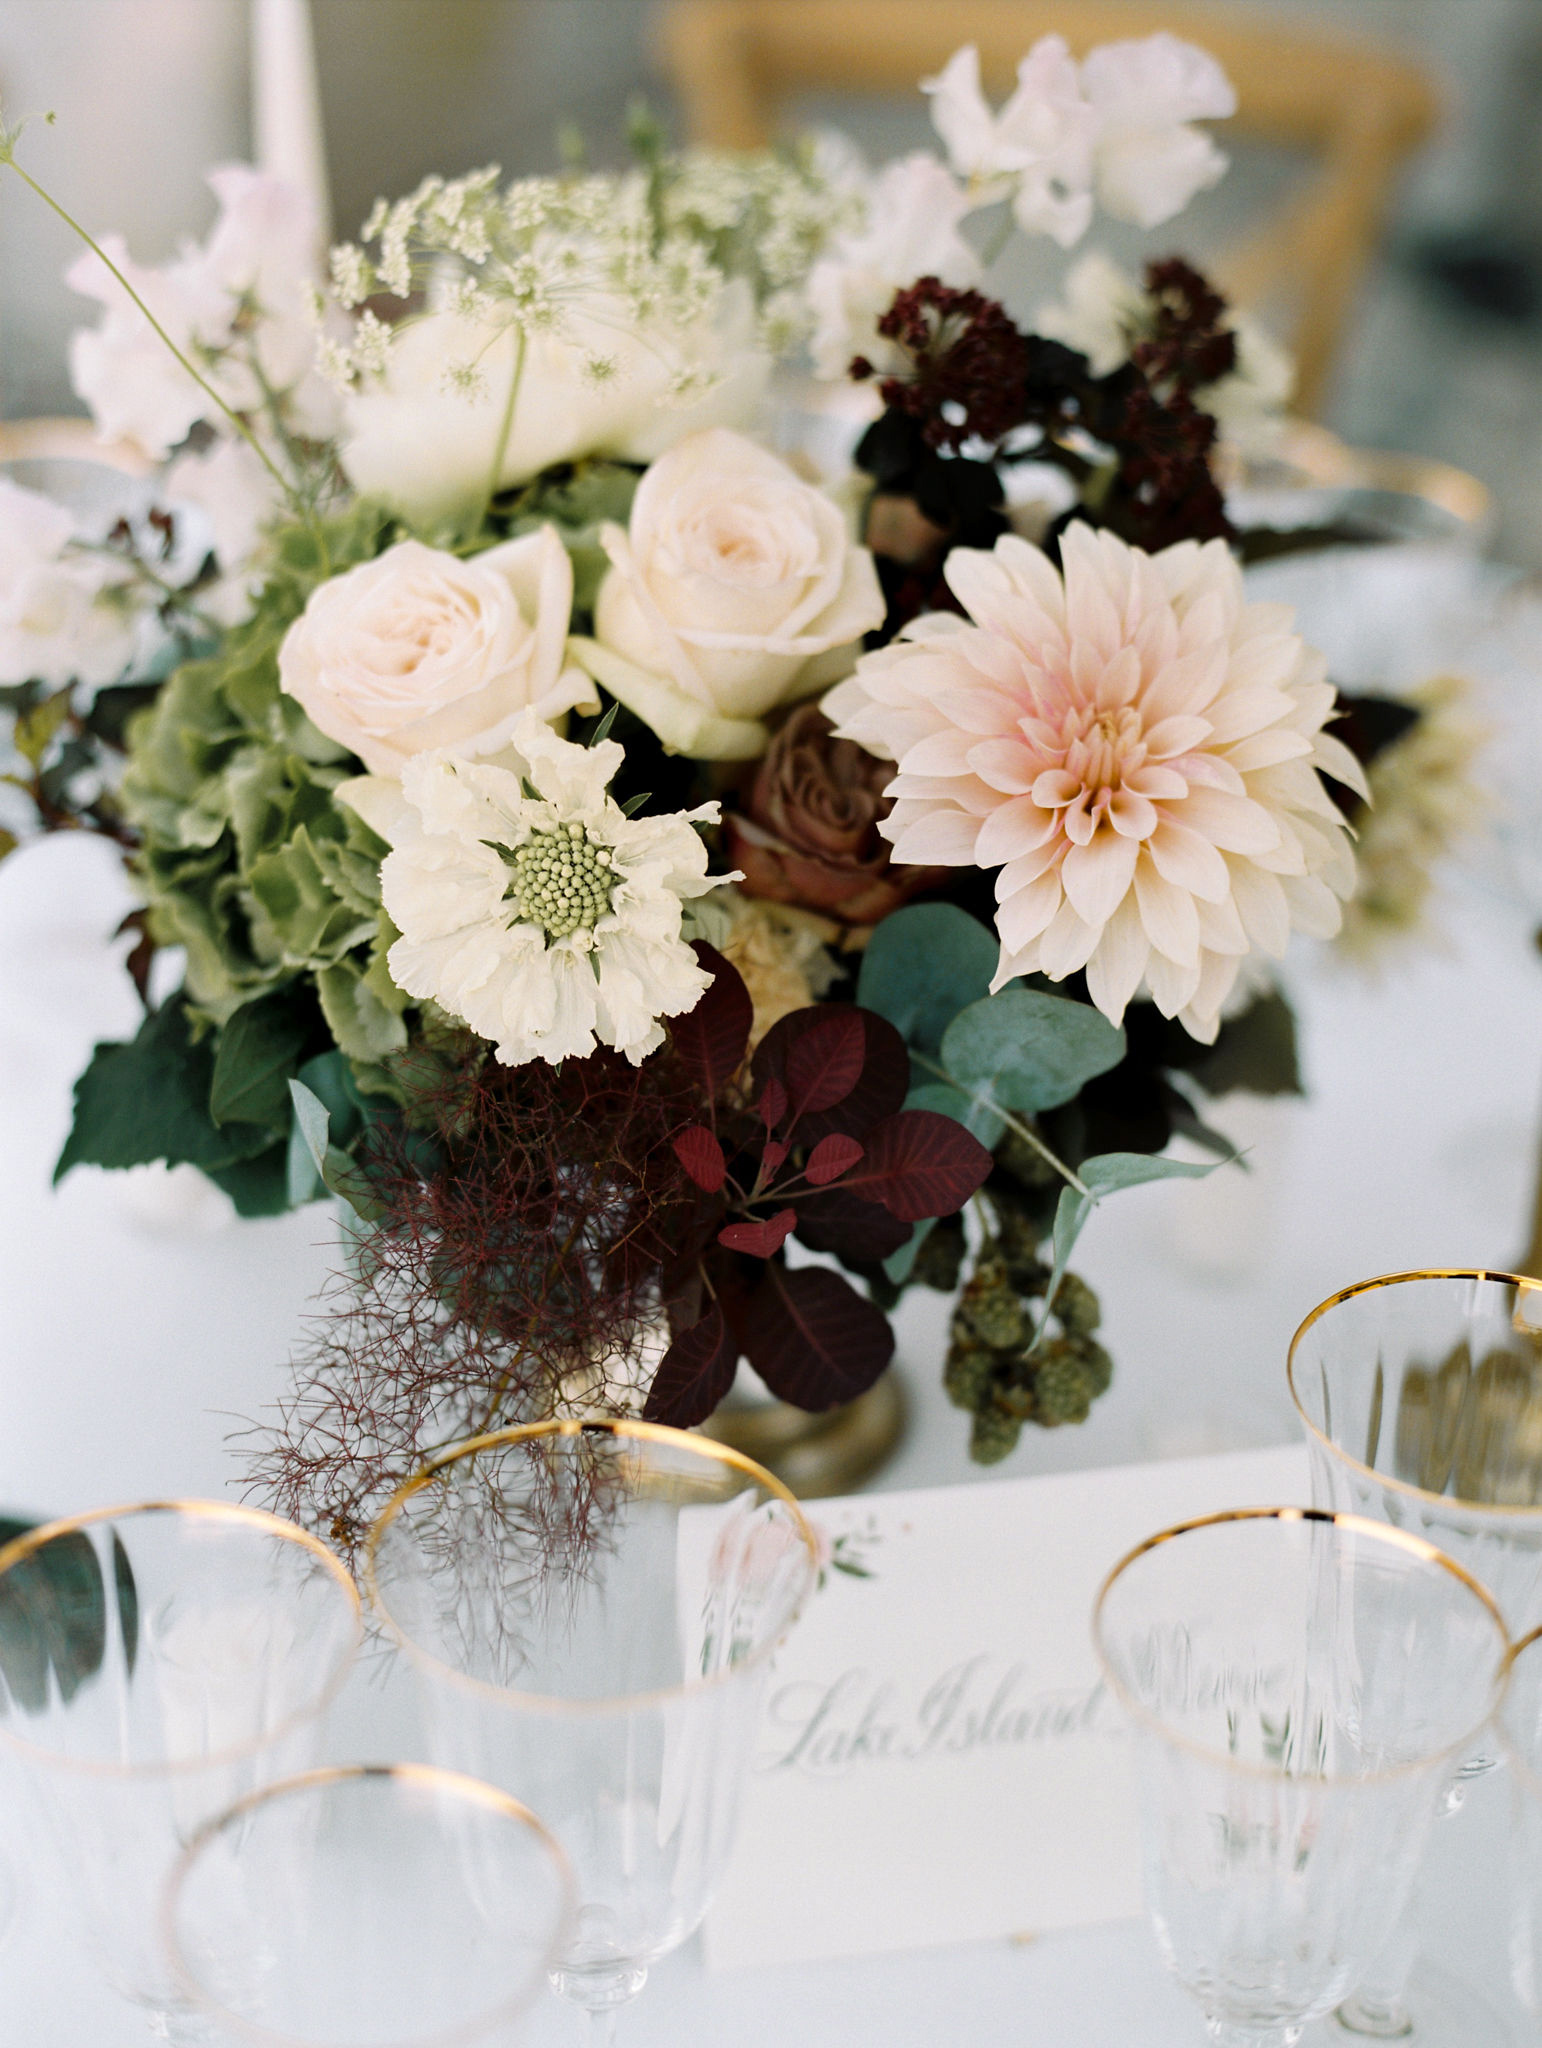 close-up floral centerpiece on reception table